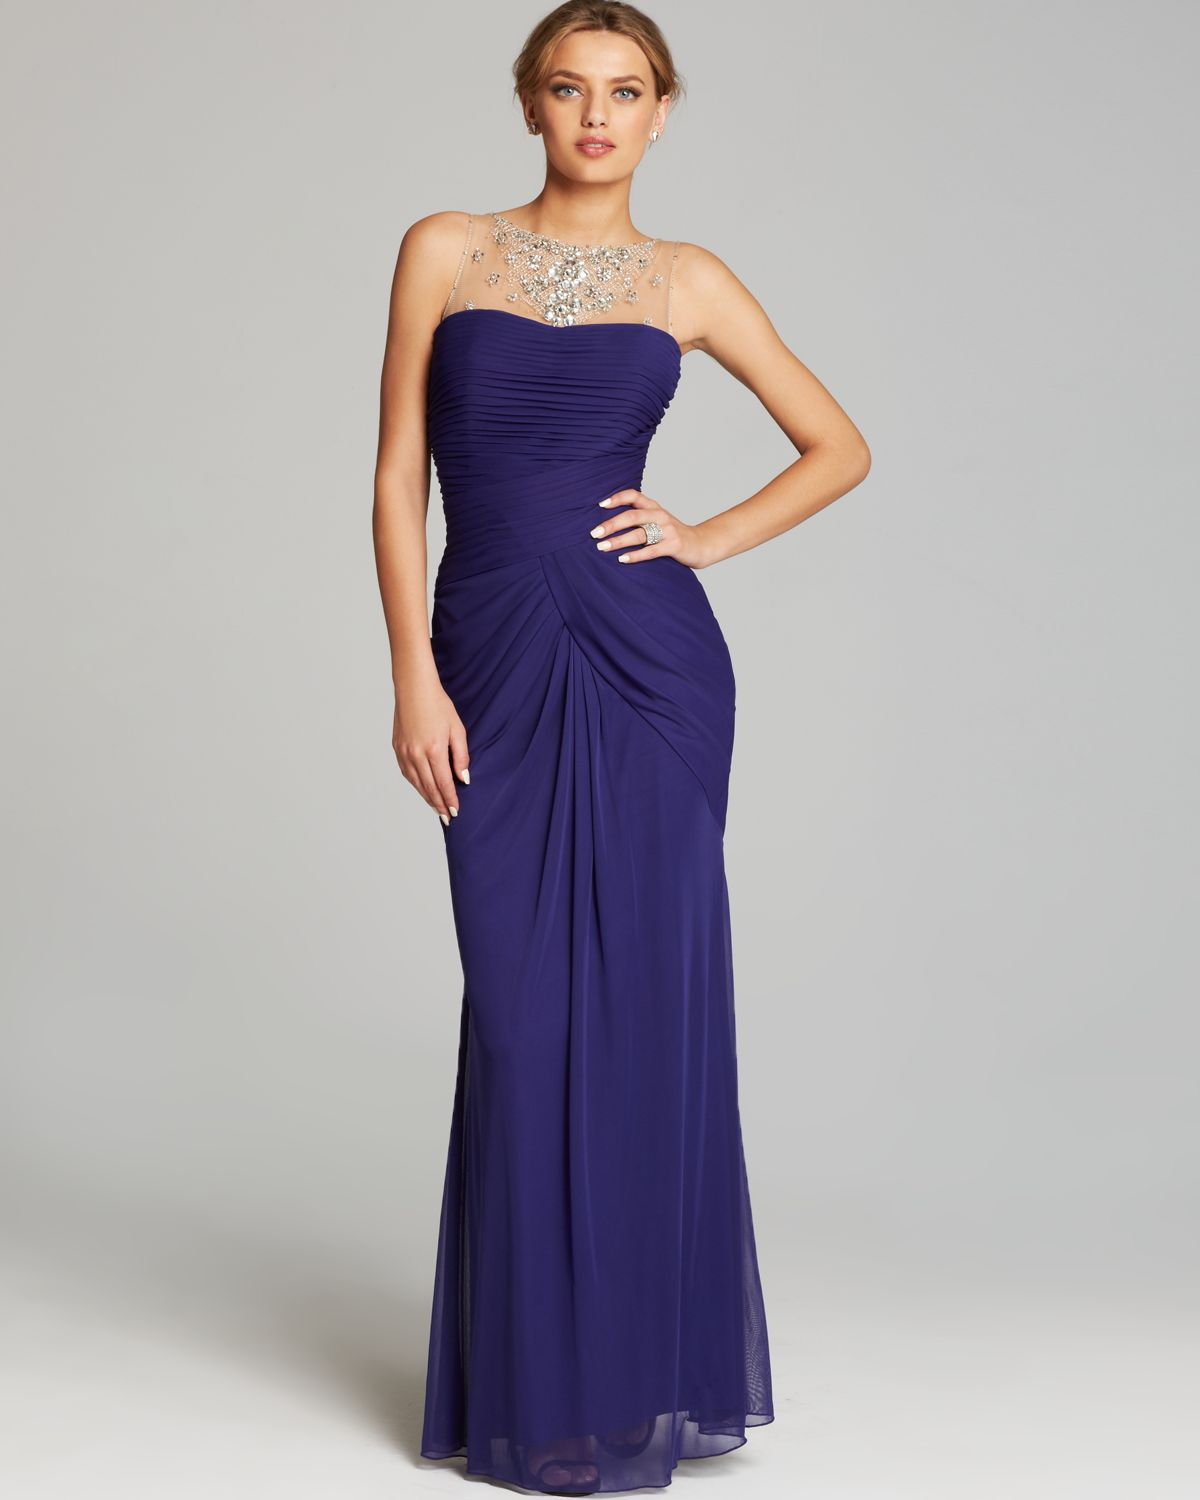 Adrianna Papell Lace Yoke Drape Gown_Other dresses_dressesss